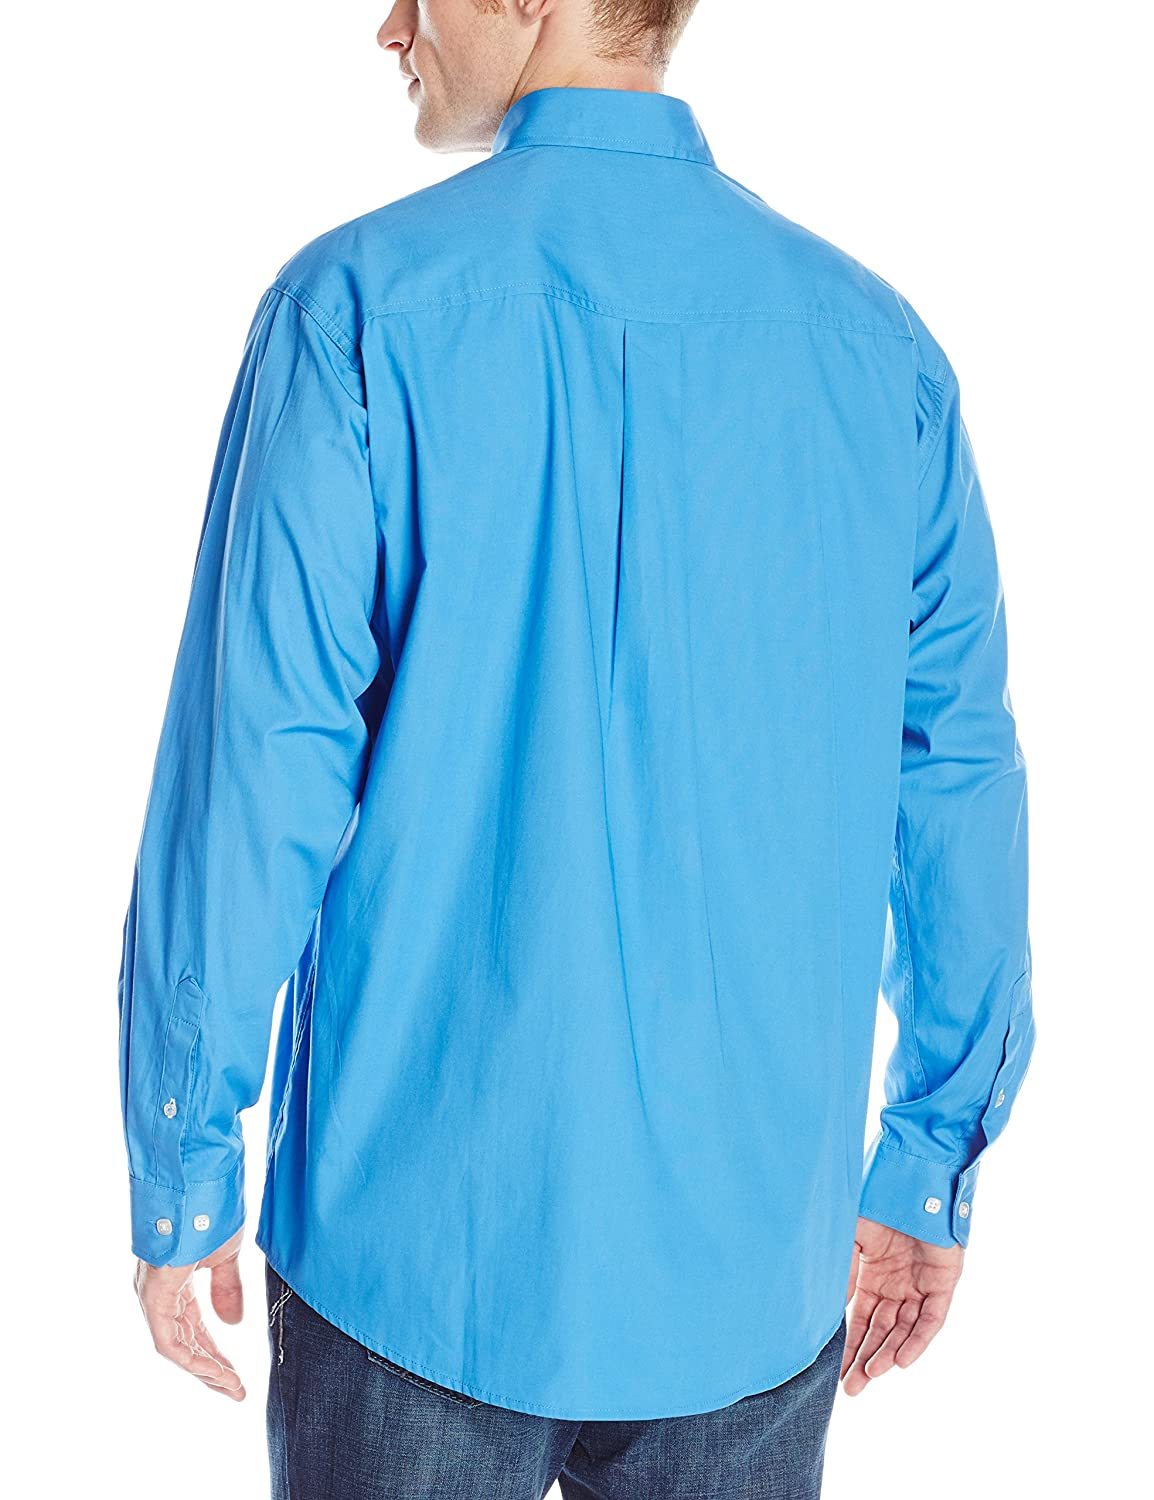 Cinch Mens Classic Fit Long Sleeve Button One Open Pocket Solid Basic